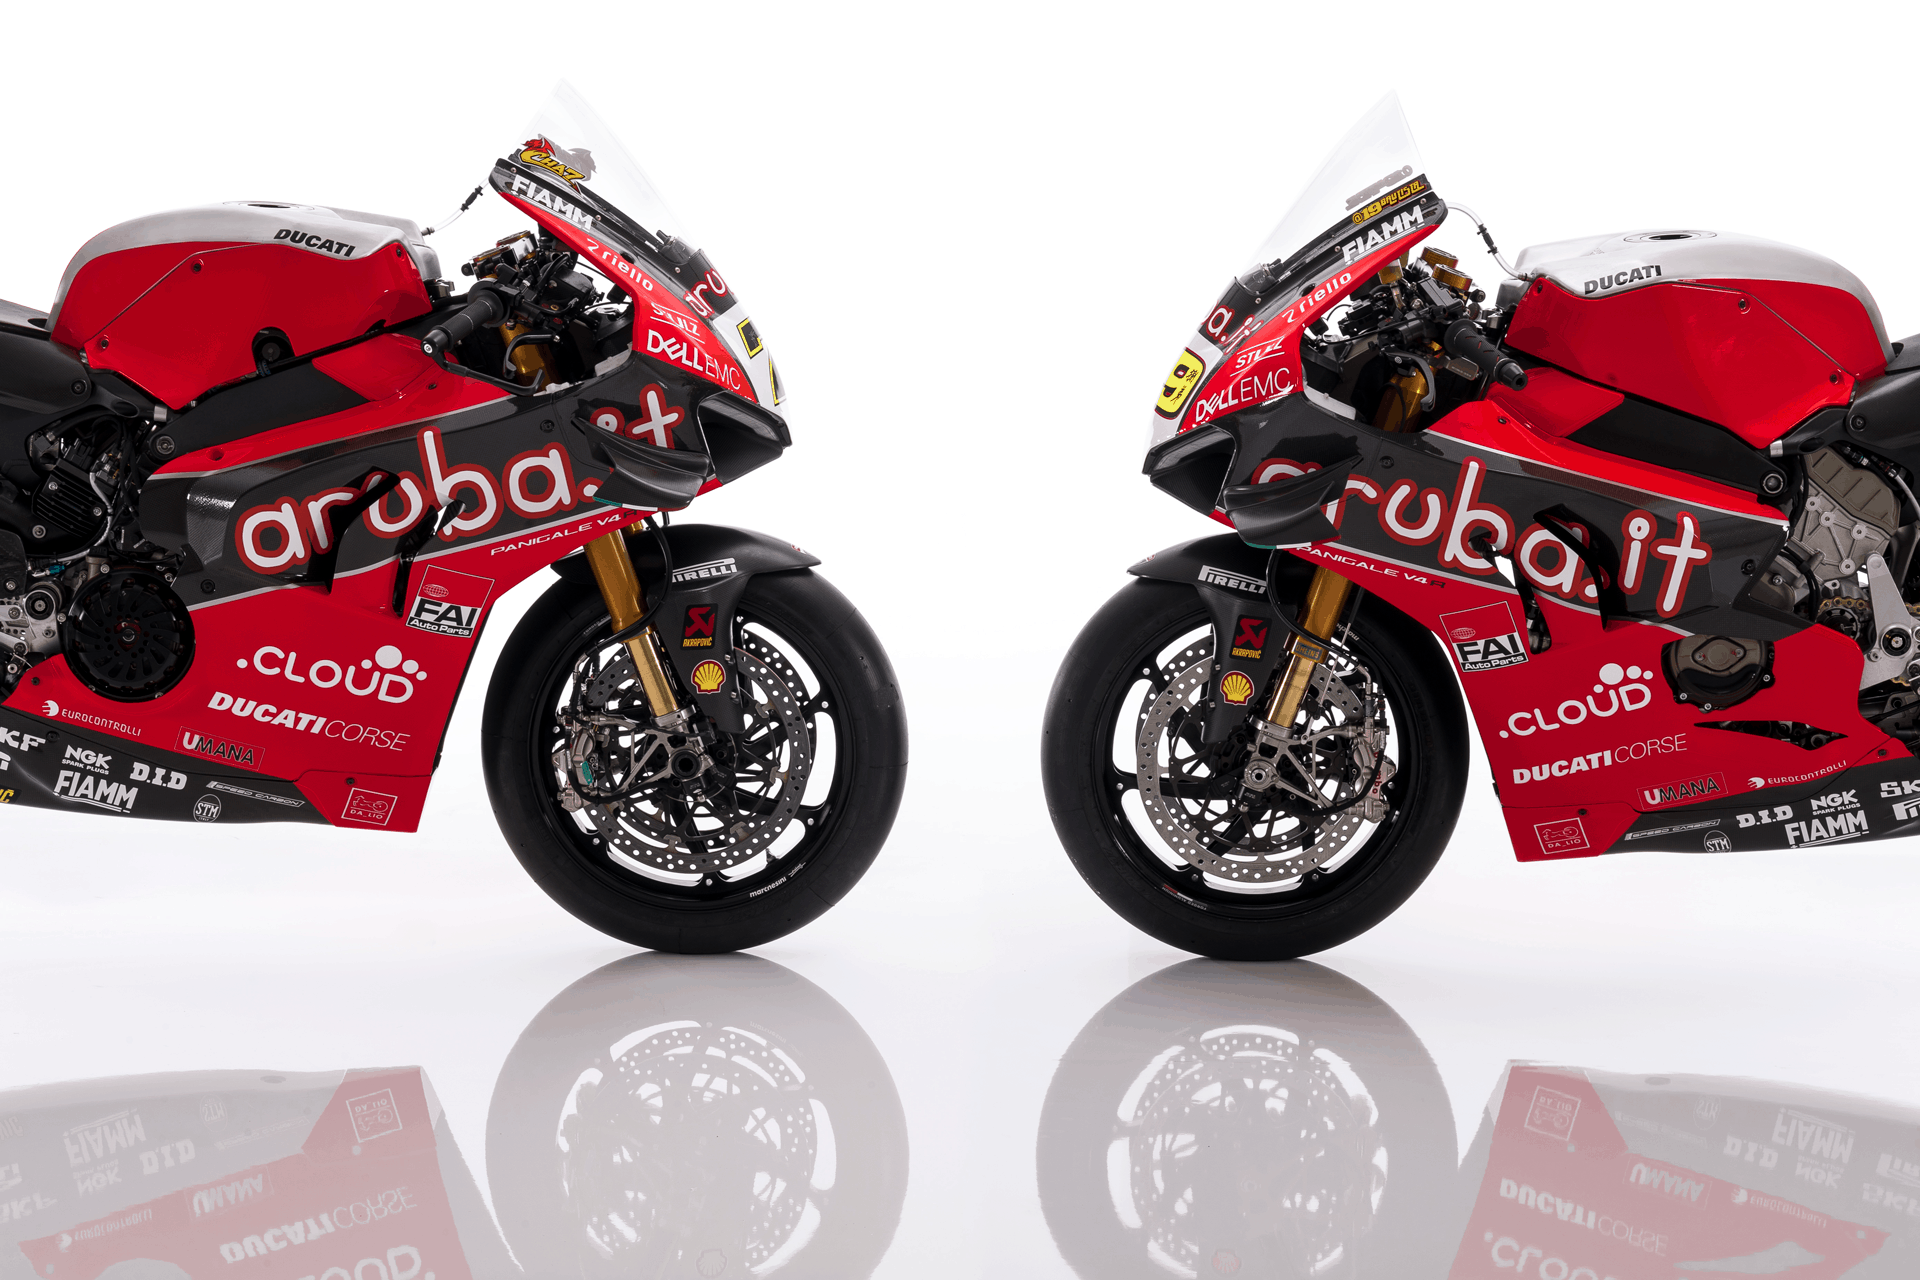 aruba.it racing Ducati